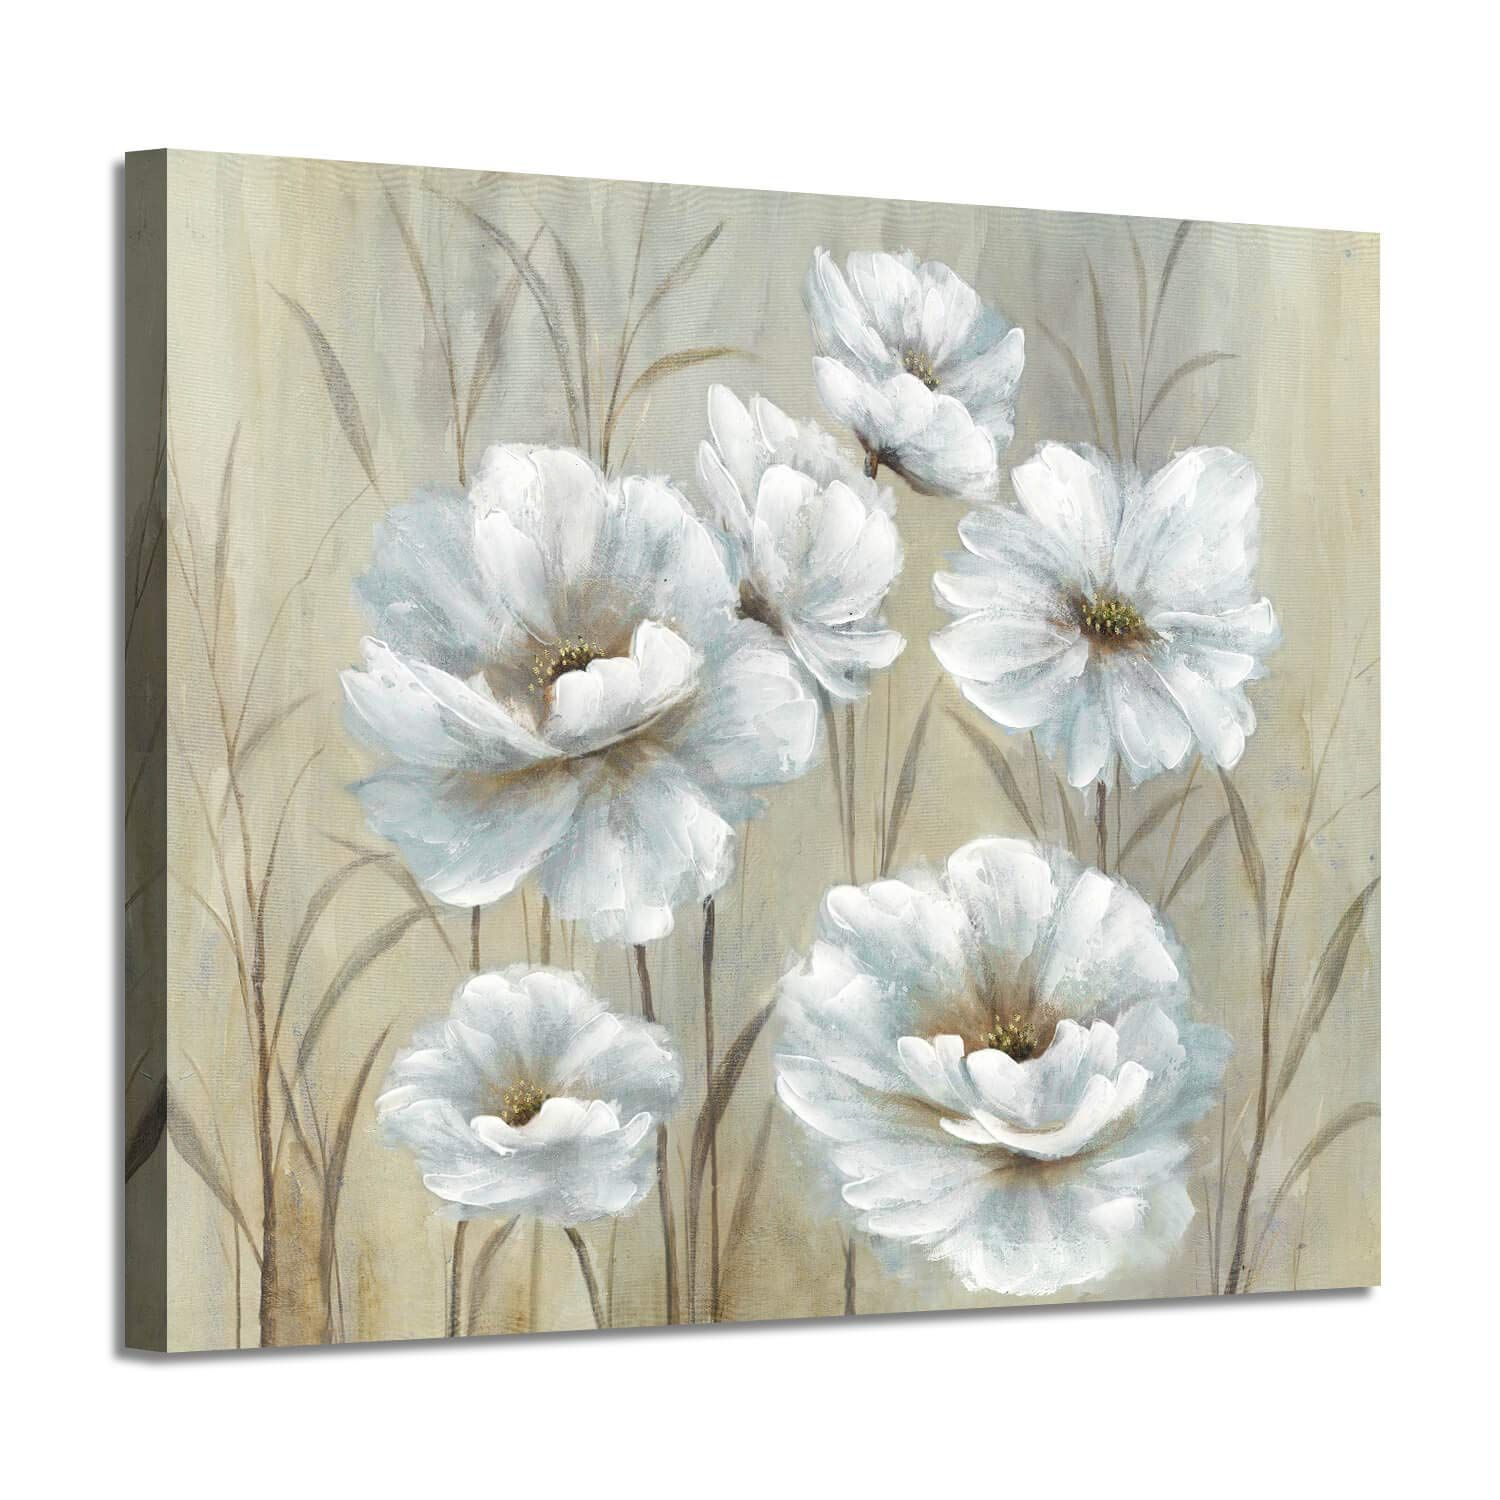 White Floral Prints Wall Art Yellowish Peony Artwork Flowers Canvas Picture Painting For Bedroom Floral Wall Art Prints Peonies Artwork Yellow Canvas Art